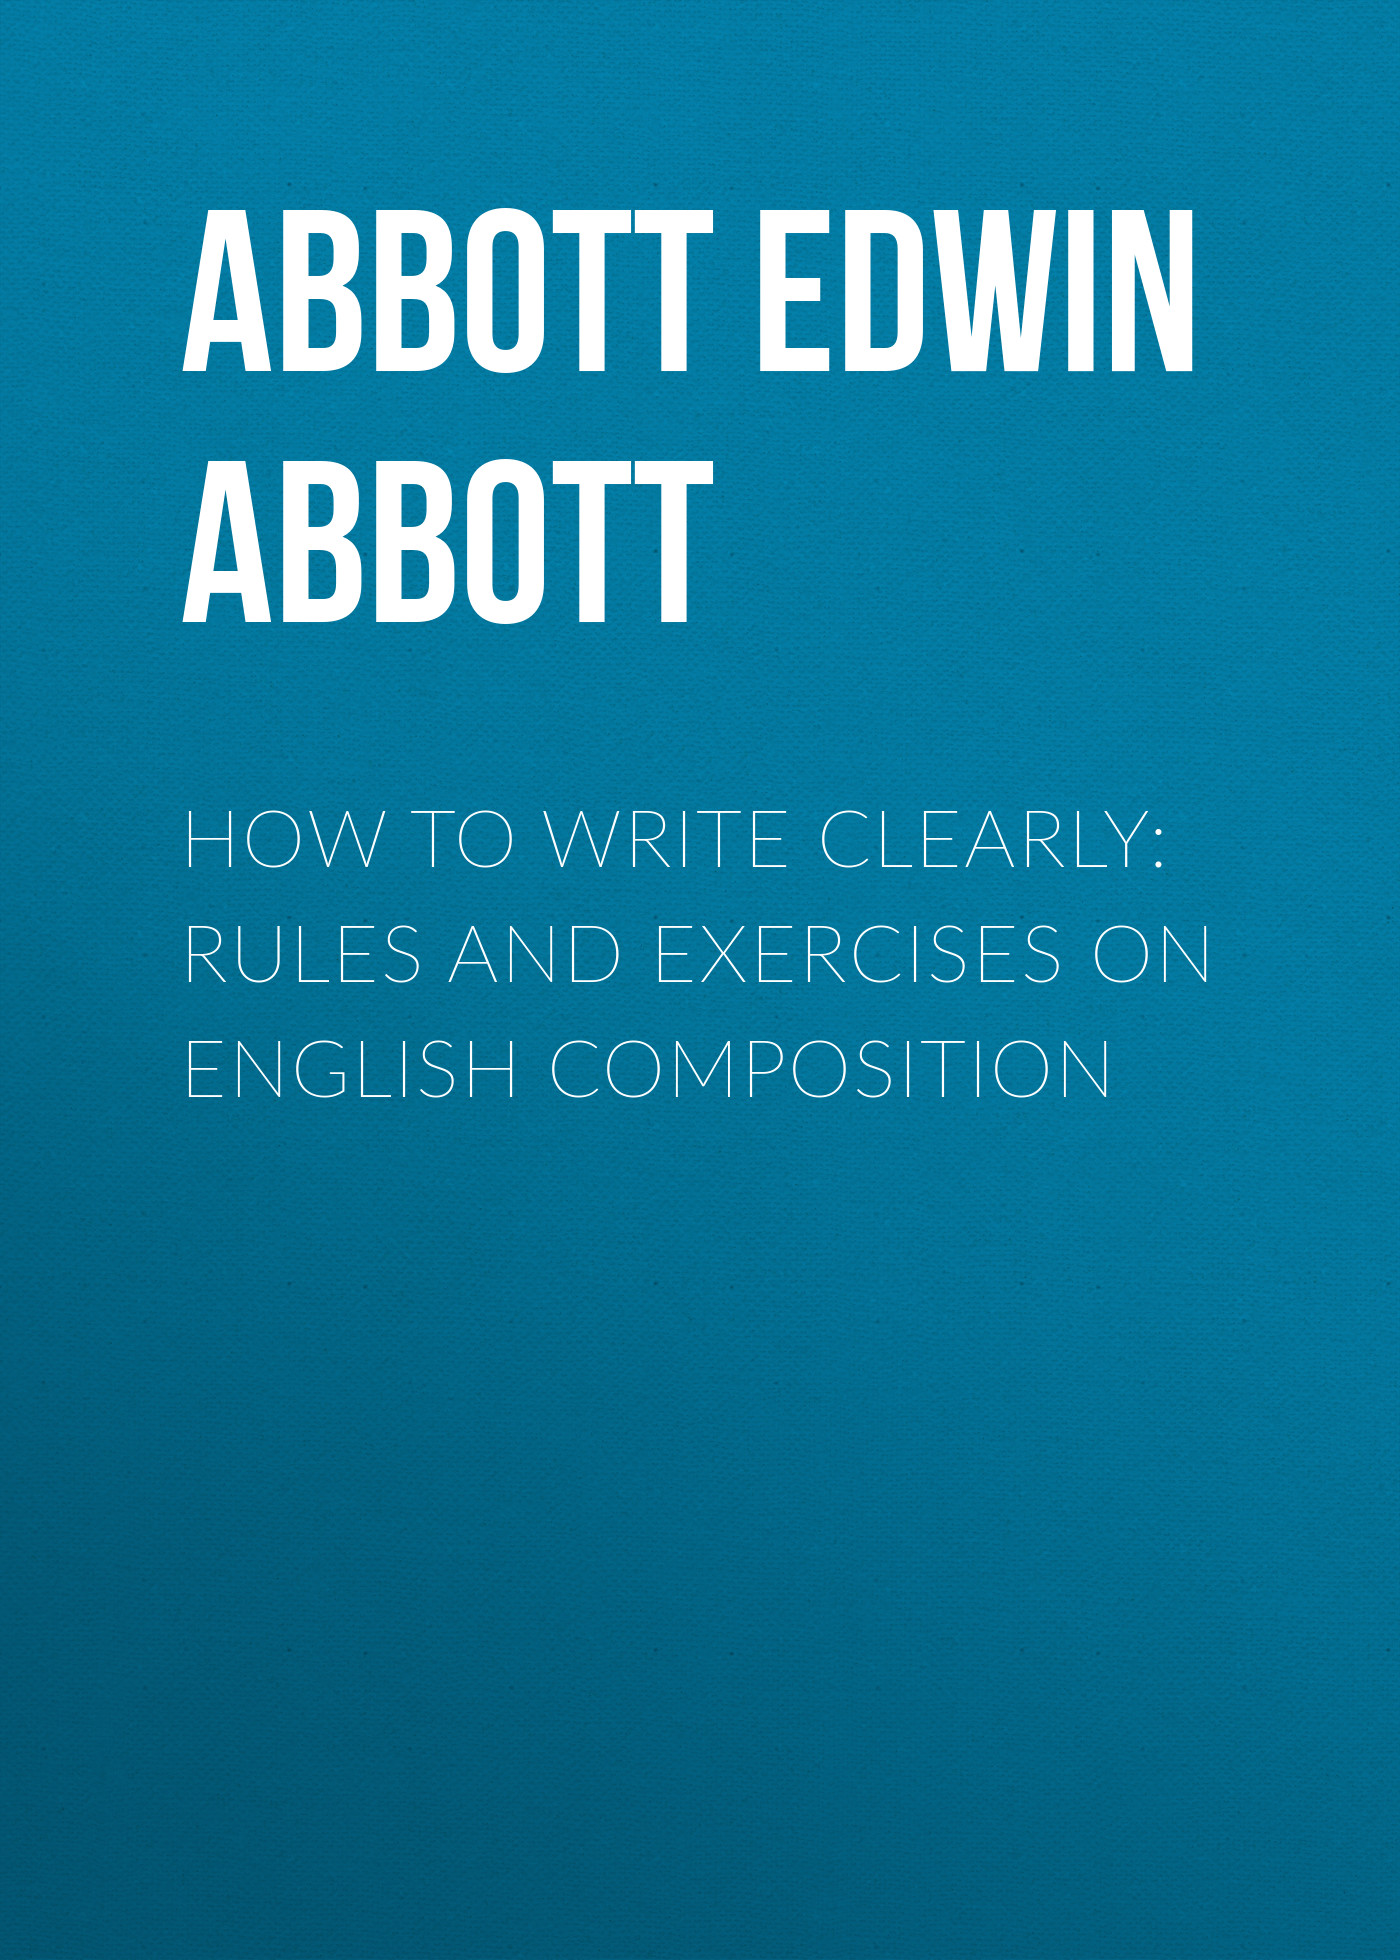 Abbott Edwin Abbott How to Write Clearly: Rules and Exercises on English Composition paul heaton jacqui abbott paul heaton jacqui abbott what have we become